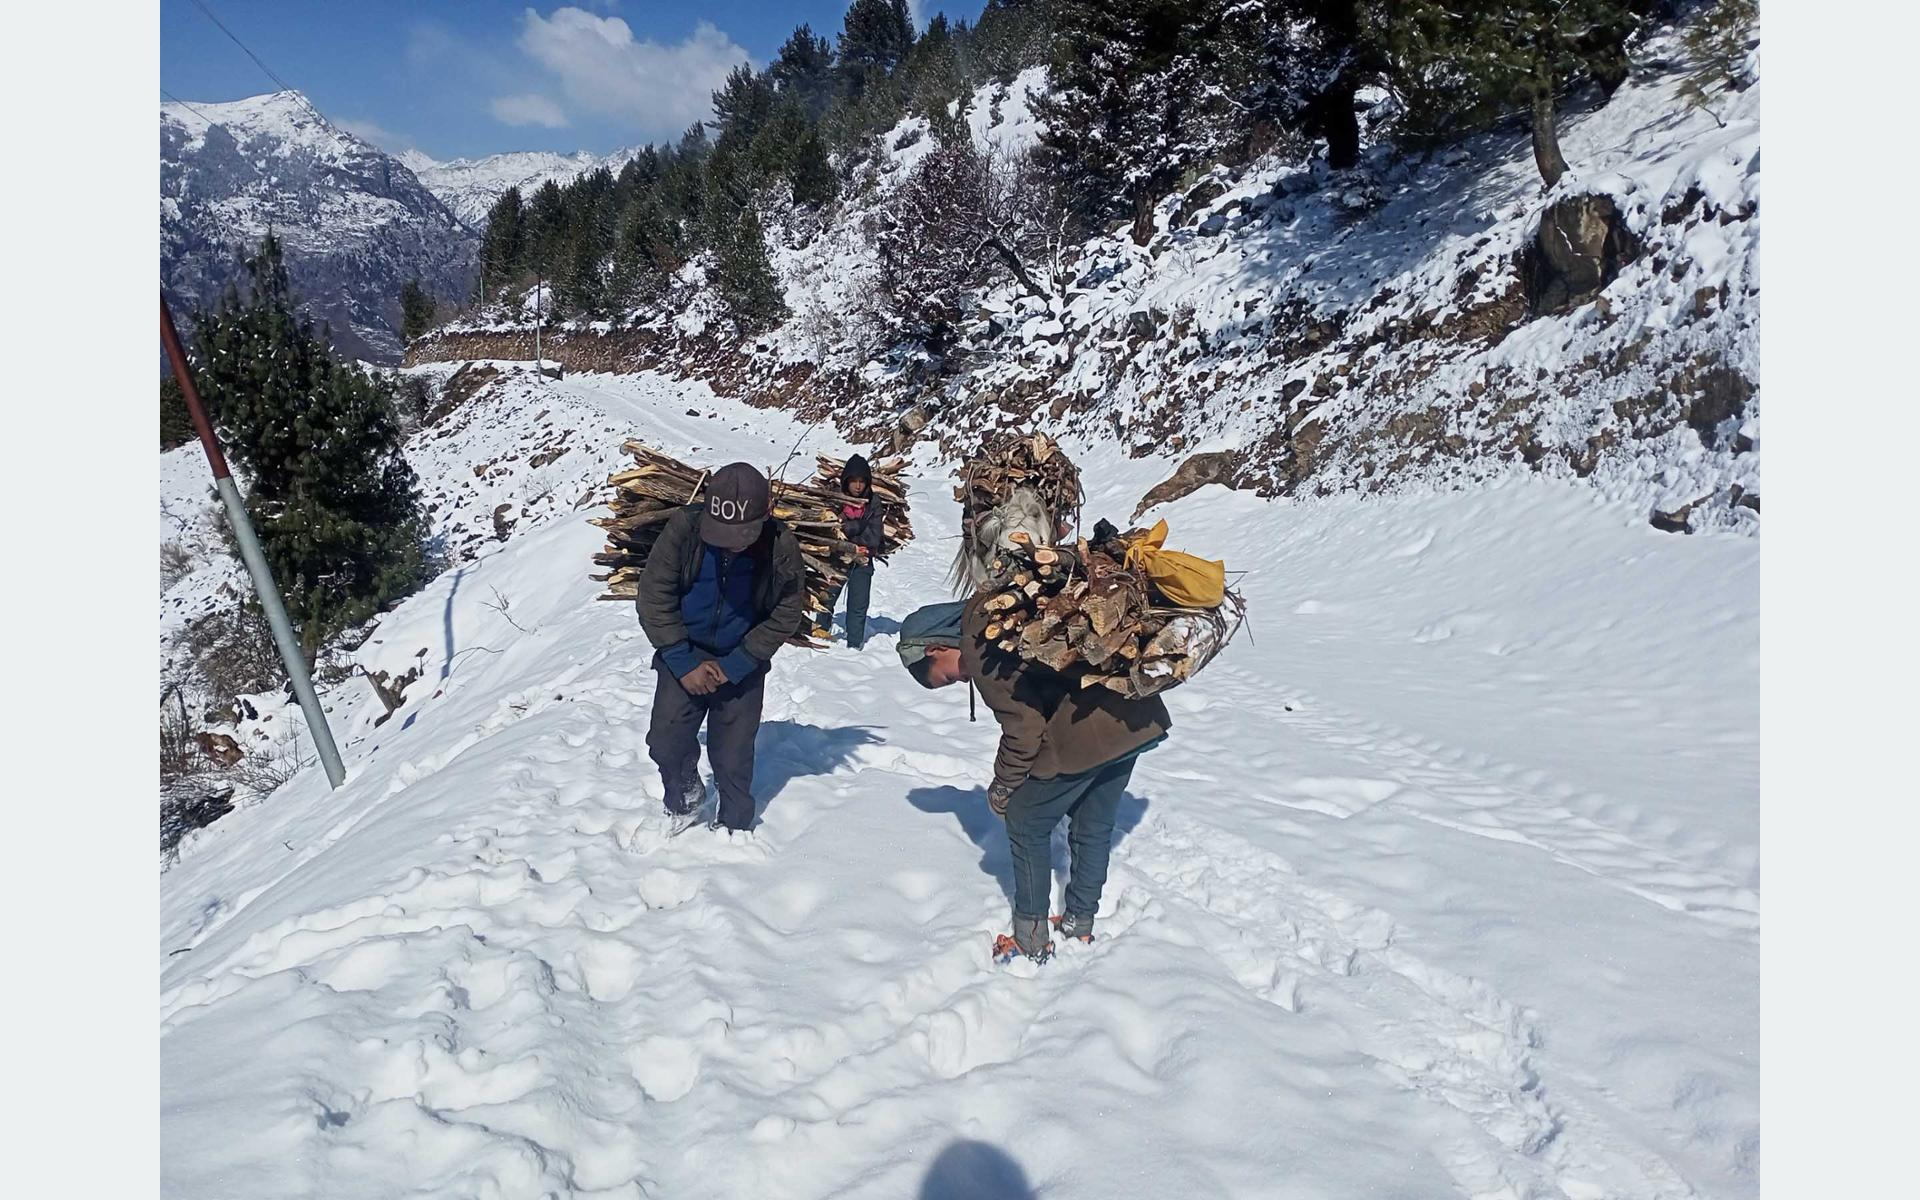 Humla children selling firewood amidst snow to supplement family income